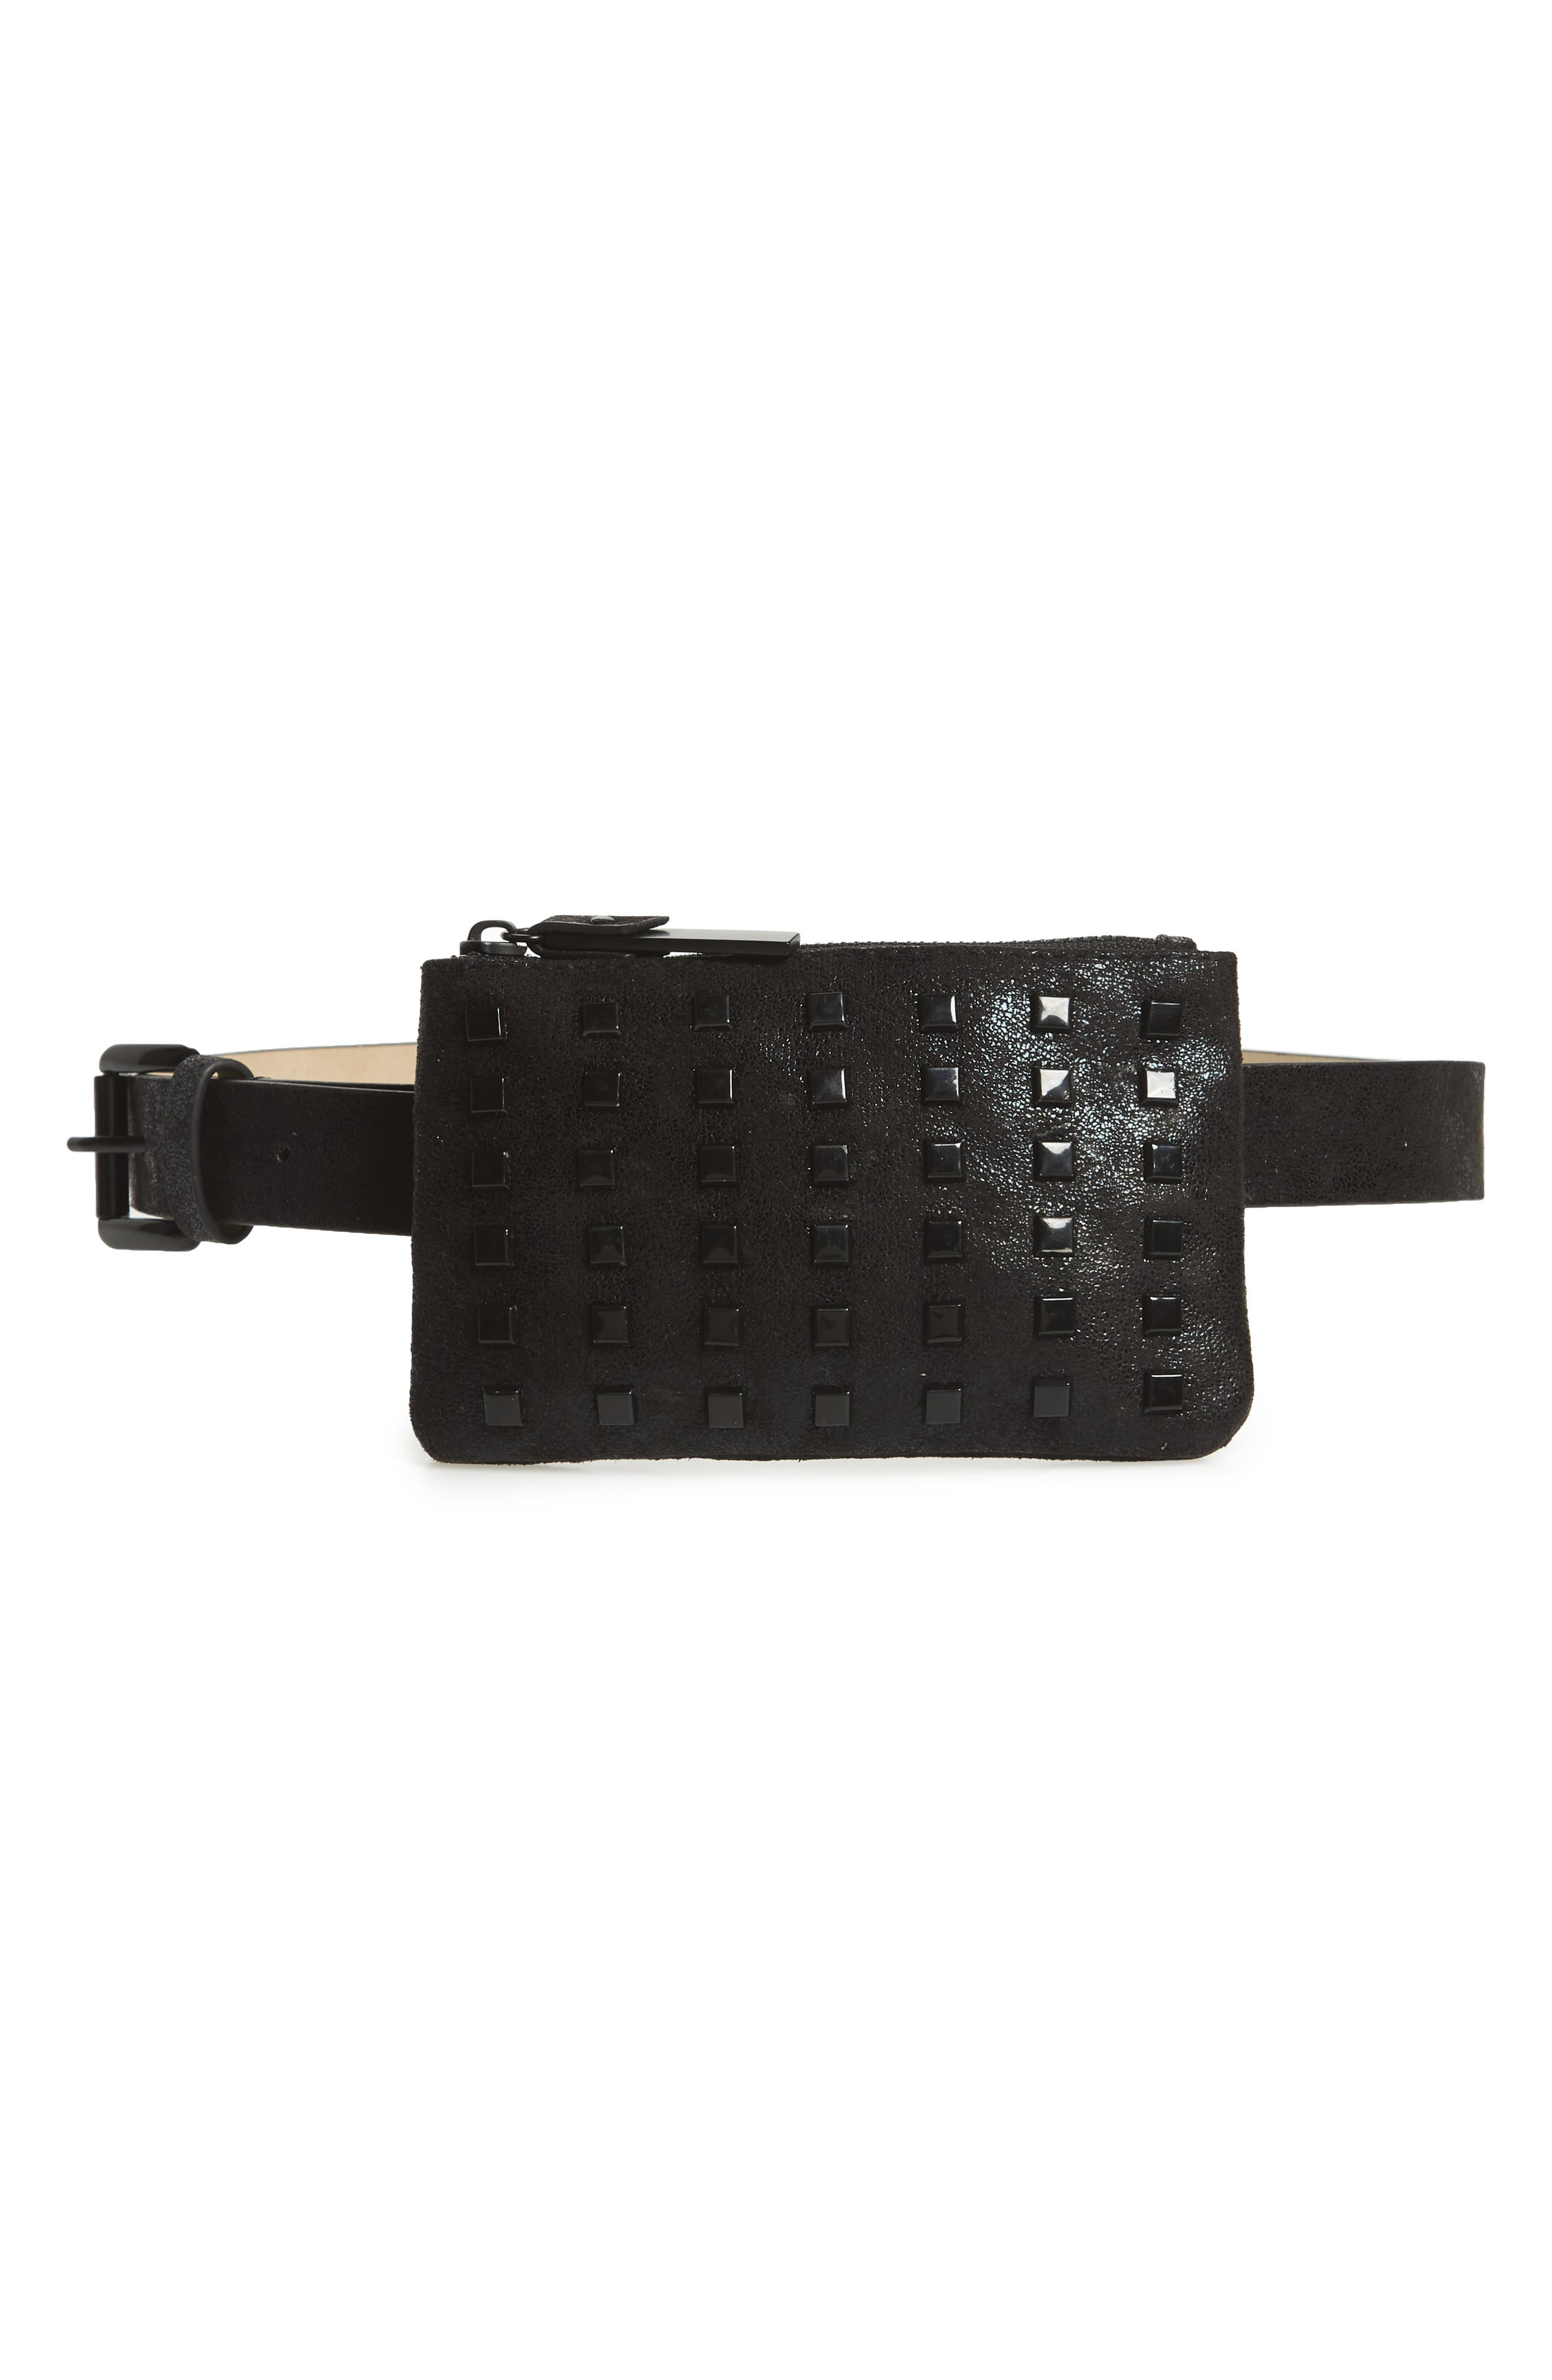 STEVE MADDEN,                             Studded Faux Leather Belt Bag,                             Main thumbnail 1, color,                             002